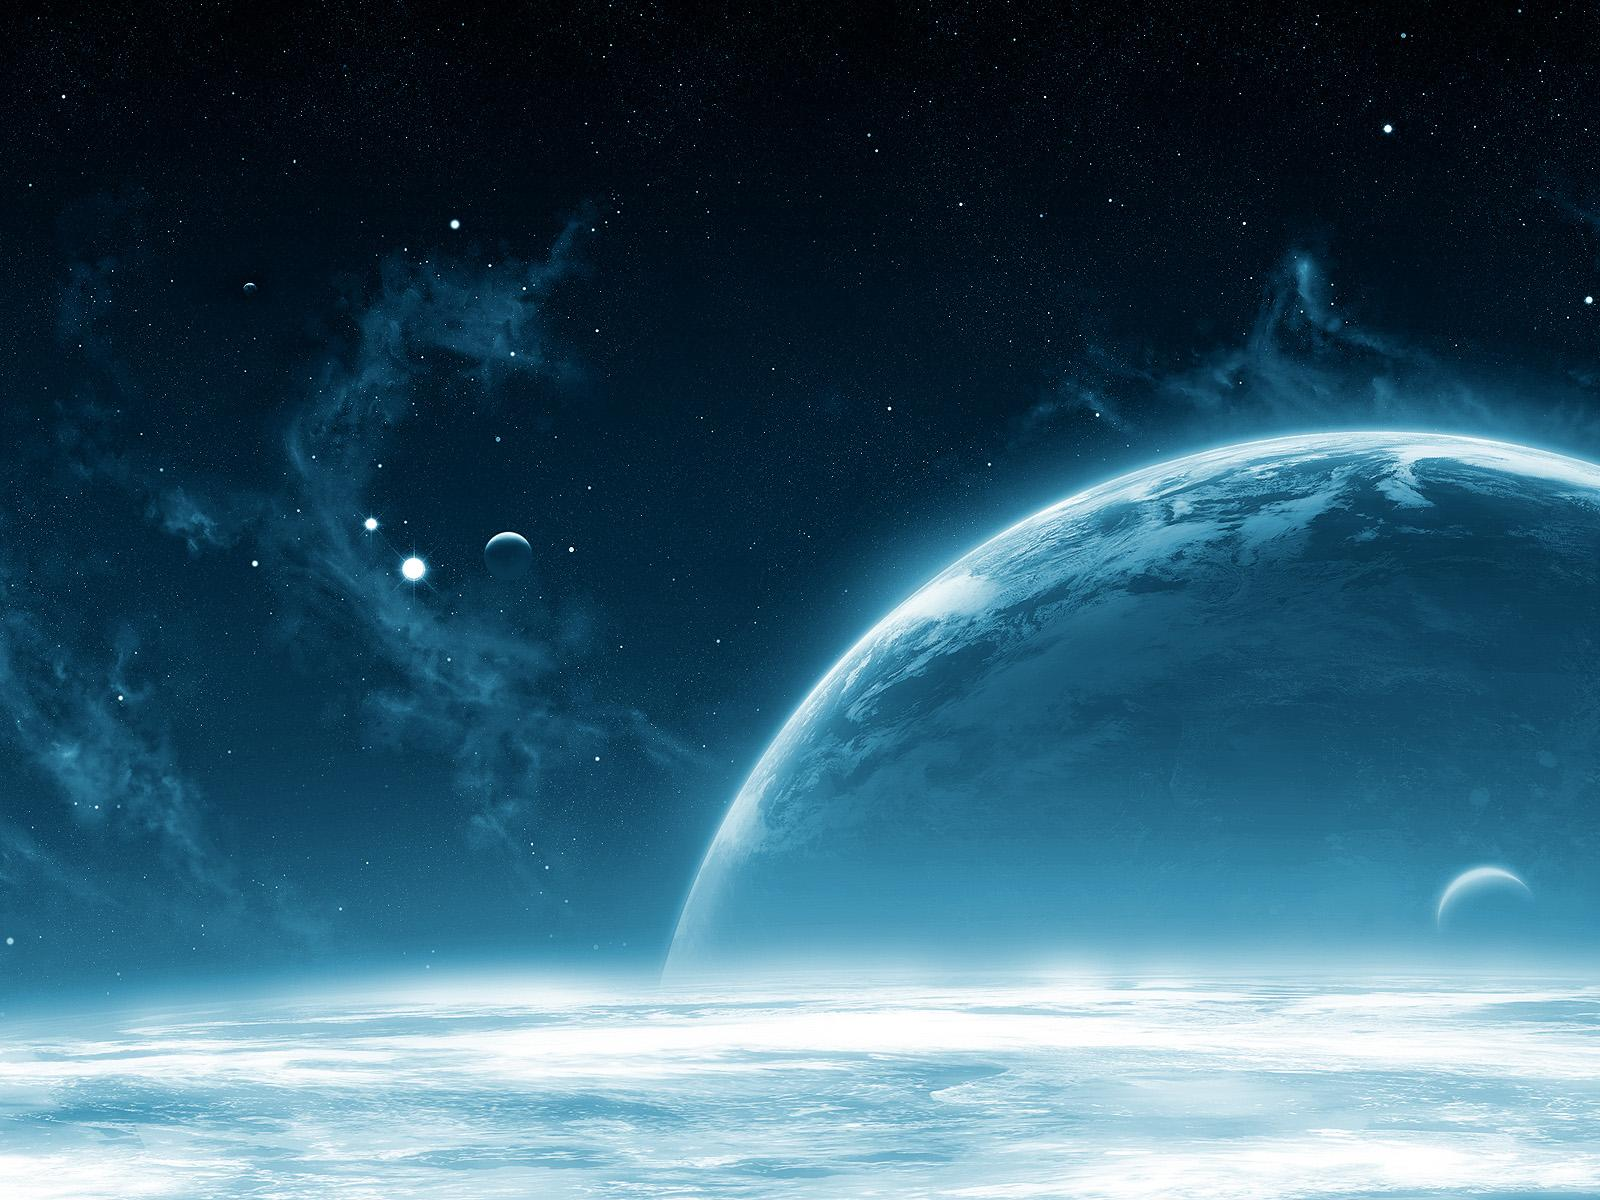 space wallpapers for desktop - photo #46